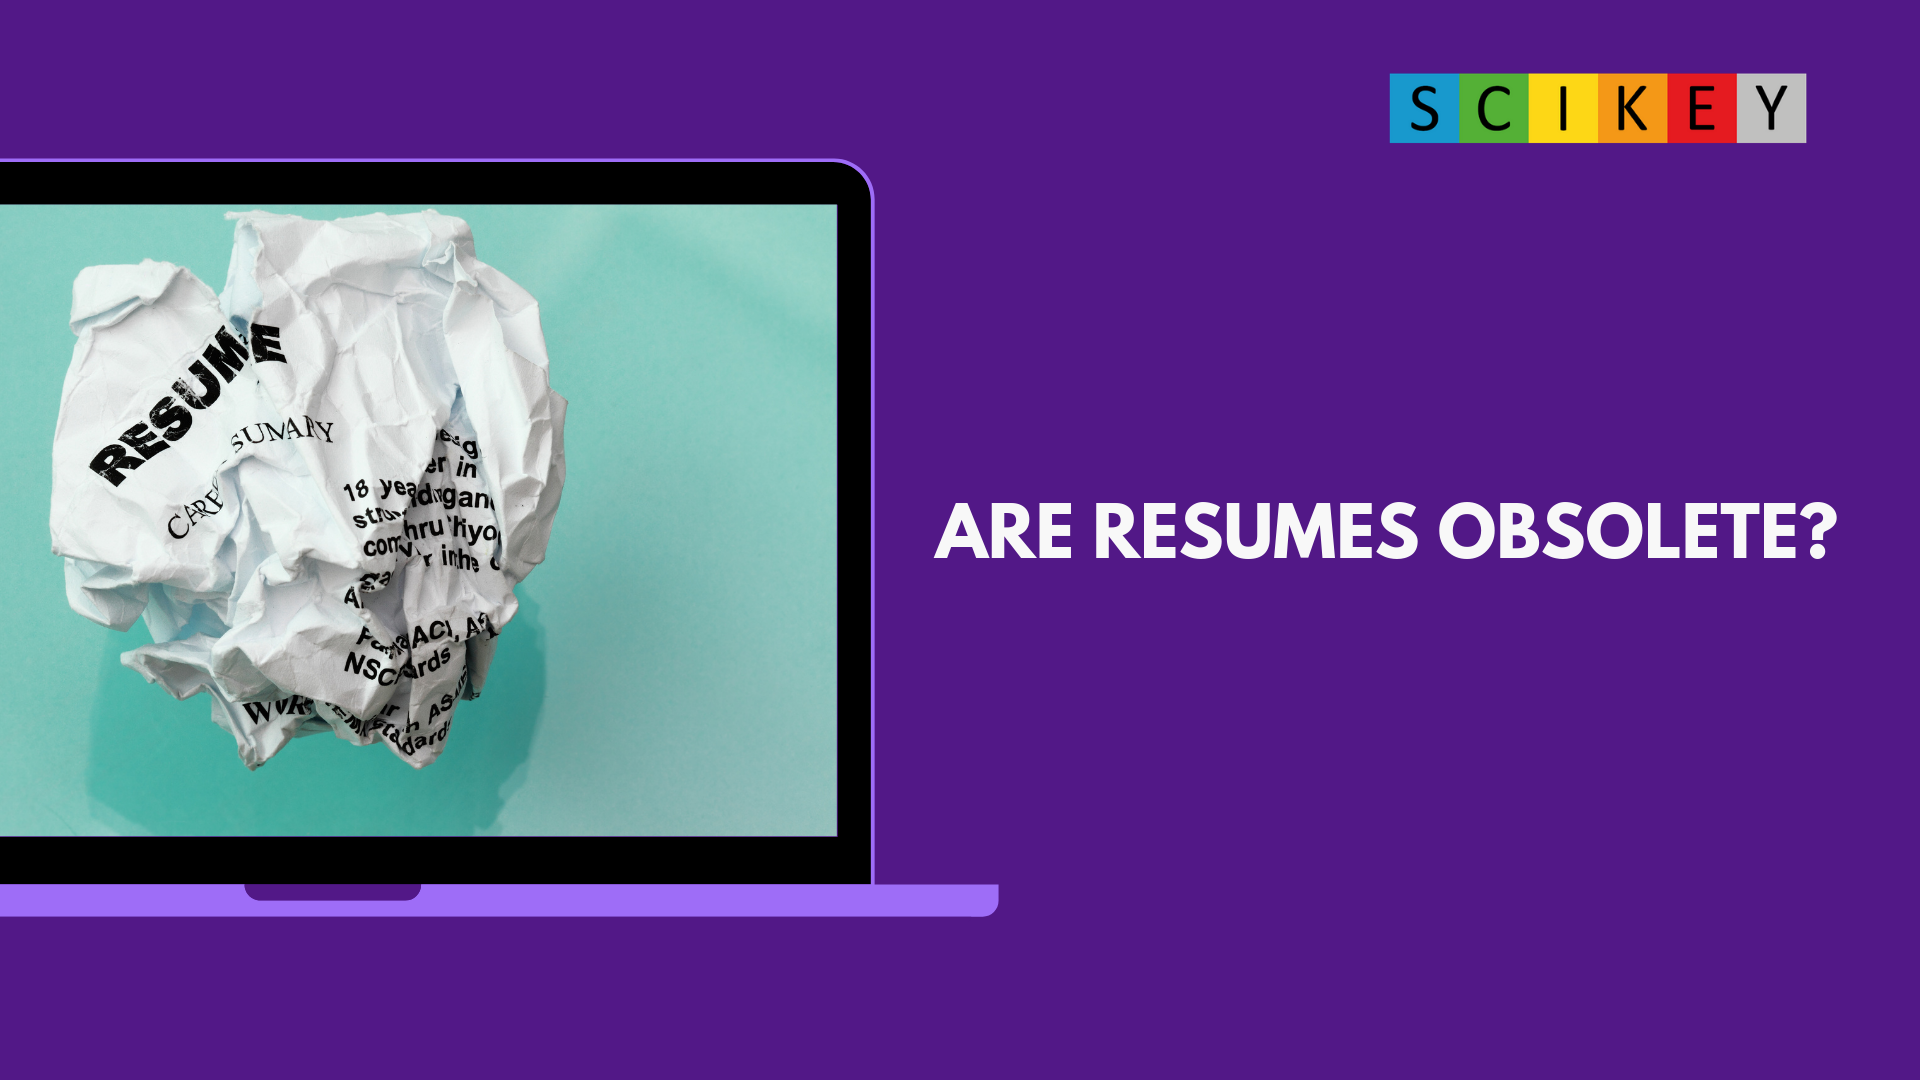 SCIKEY - Resumes are still the standard way of marketing yourself when conducting a job search. However, technology is catching on & many companies prefer looking at a digital portfolio or an online resume.  #SCIKEY is here to address new hiring needs. With SCIKEY's Fresume (Fresh Digital Resume) and digital portfolio via our social network platform, job seekers can utilise them to help them win a new job.  Sign up on SCIKEY & create your Fresume now https://buff.ly/2EP02qA  #JobSearch #Recruitment #Technology #Recruiting #Jobs #Network #JobSeekers #HR #HRTech | Facebook